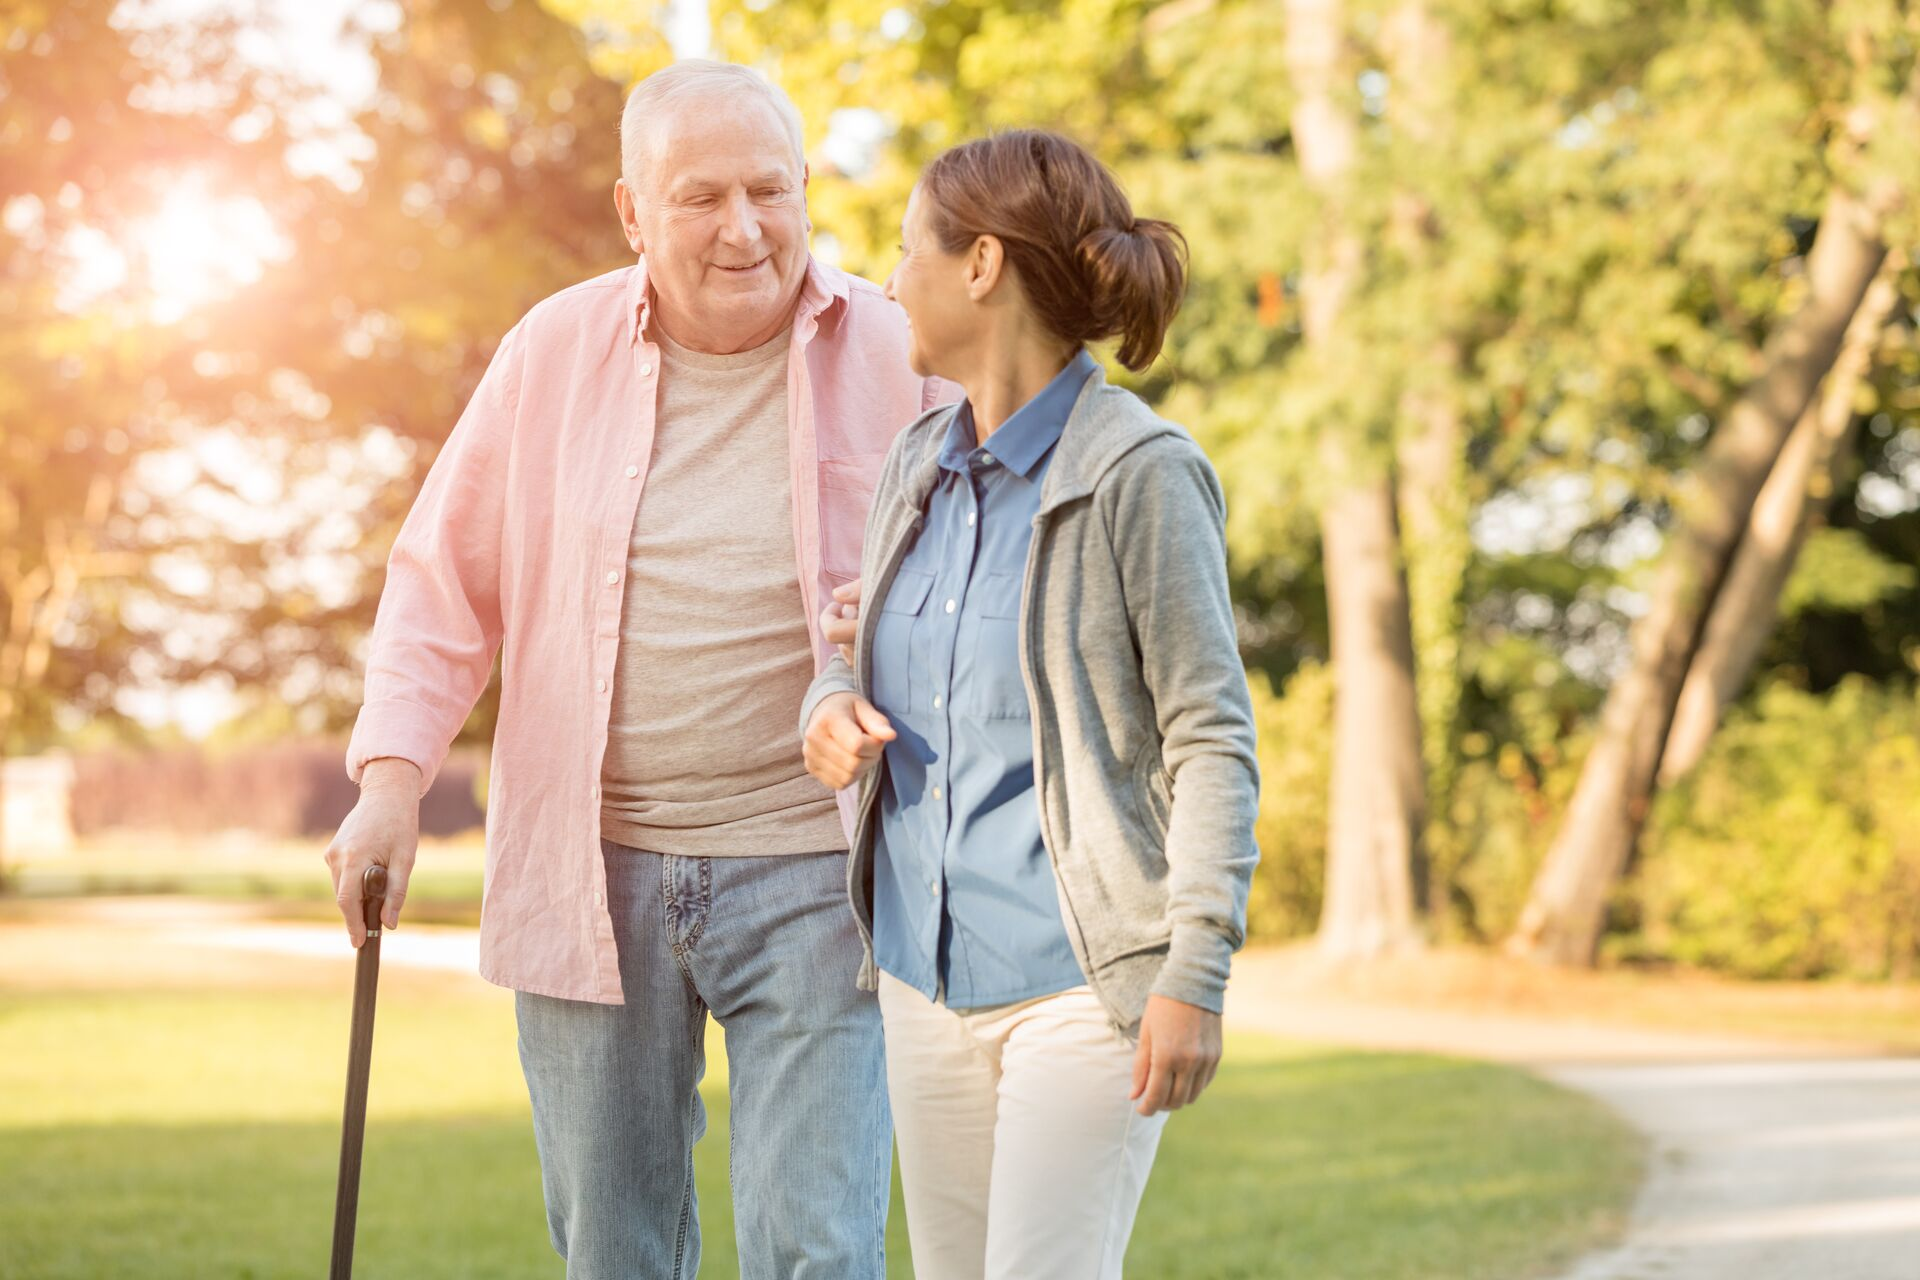 senior walking outside with a cane and with a younger adult woman